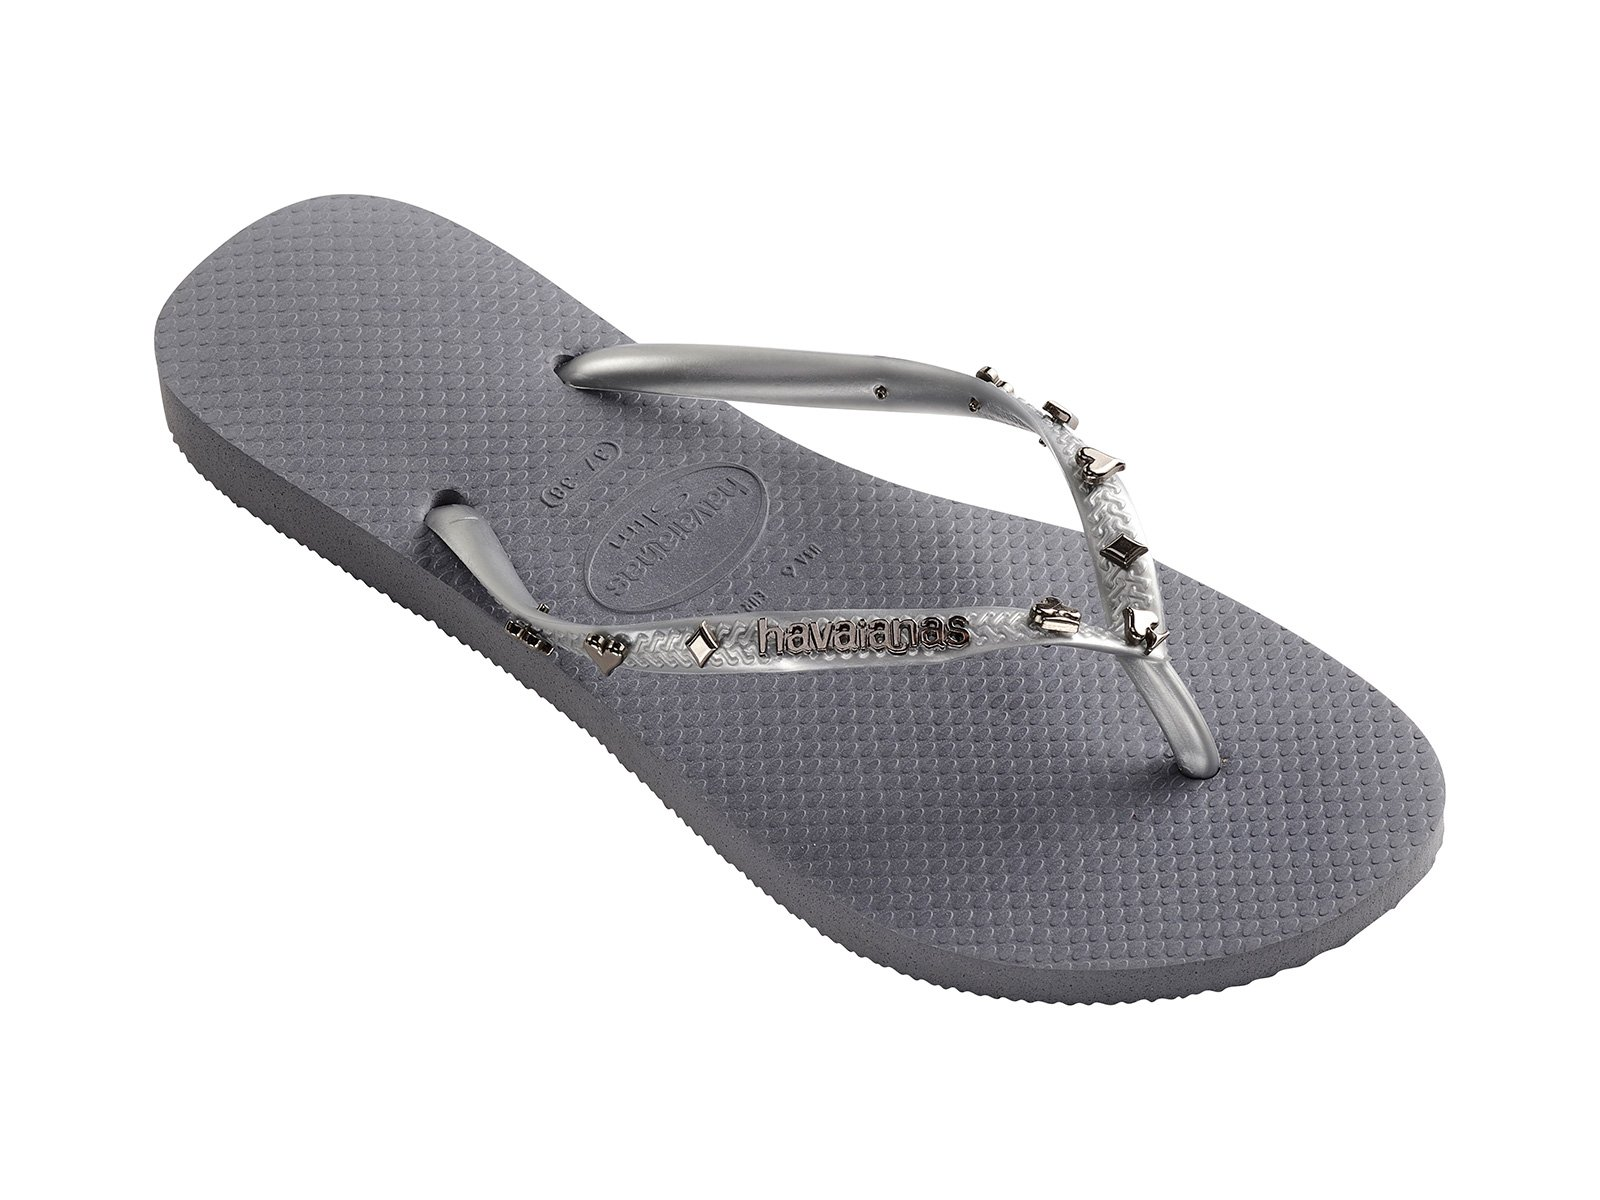 40b909215e81 Grey Flip-flops With Silver-coloured Playing Card Symbols - Slim Hardware Steel  Grey - Havaianas